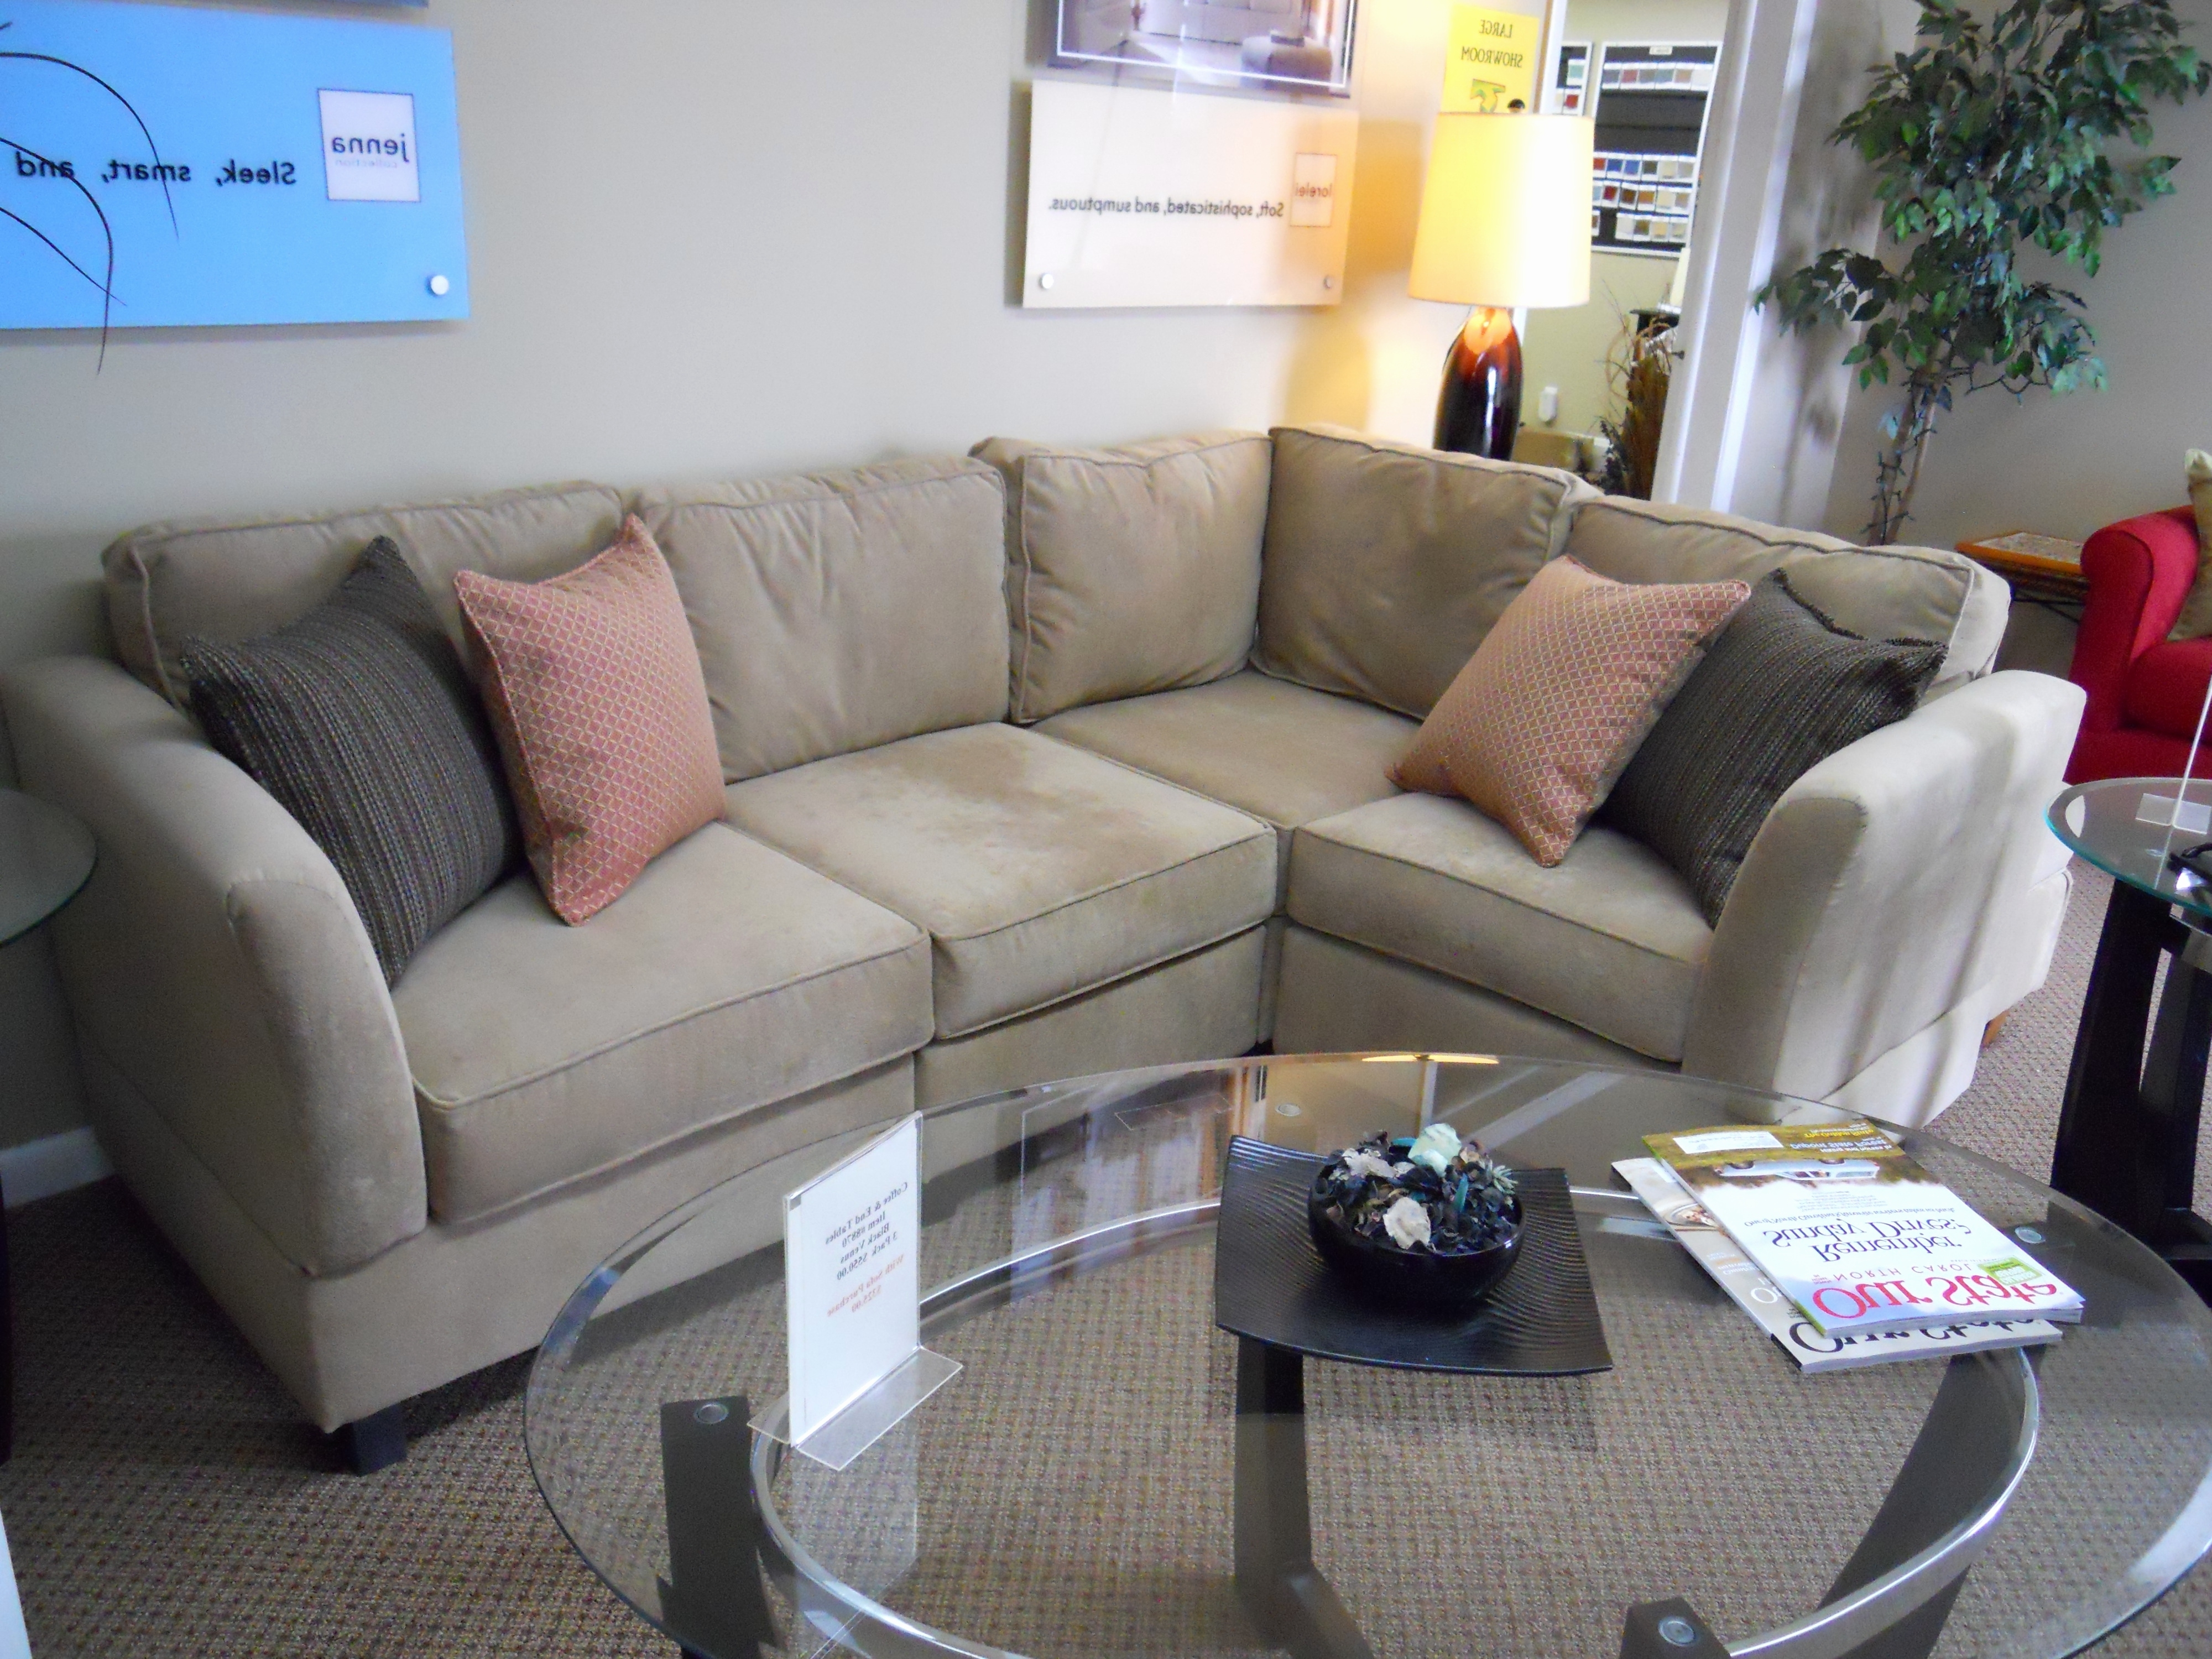 Most Recent Lee Industries Sectional Sofa Unique Lovely Lee Industries Within Lee Industries Sectional Sofas (View 4 of 20)